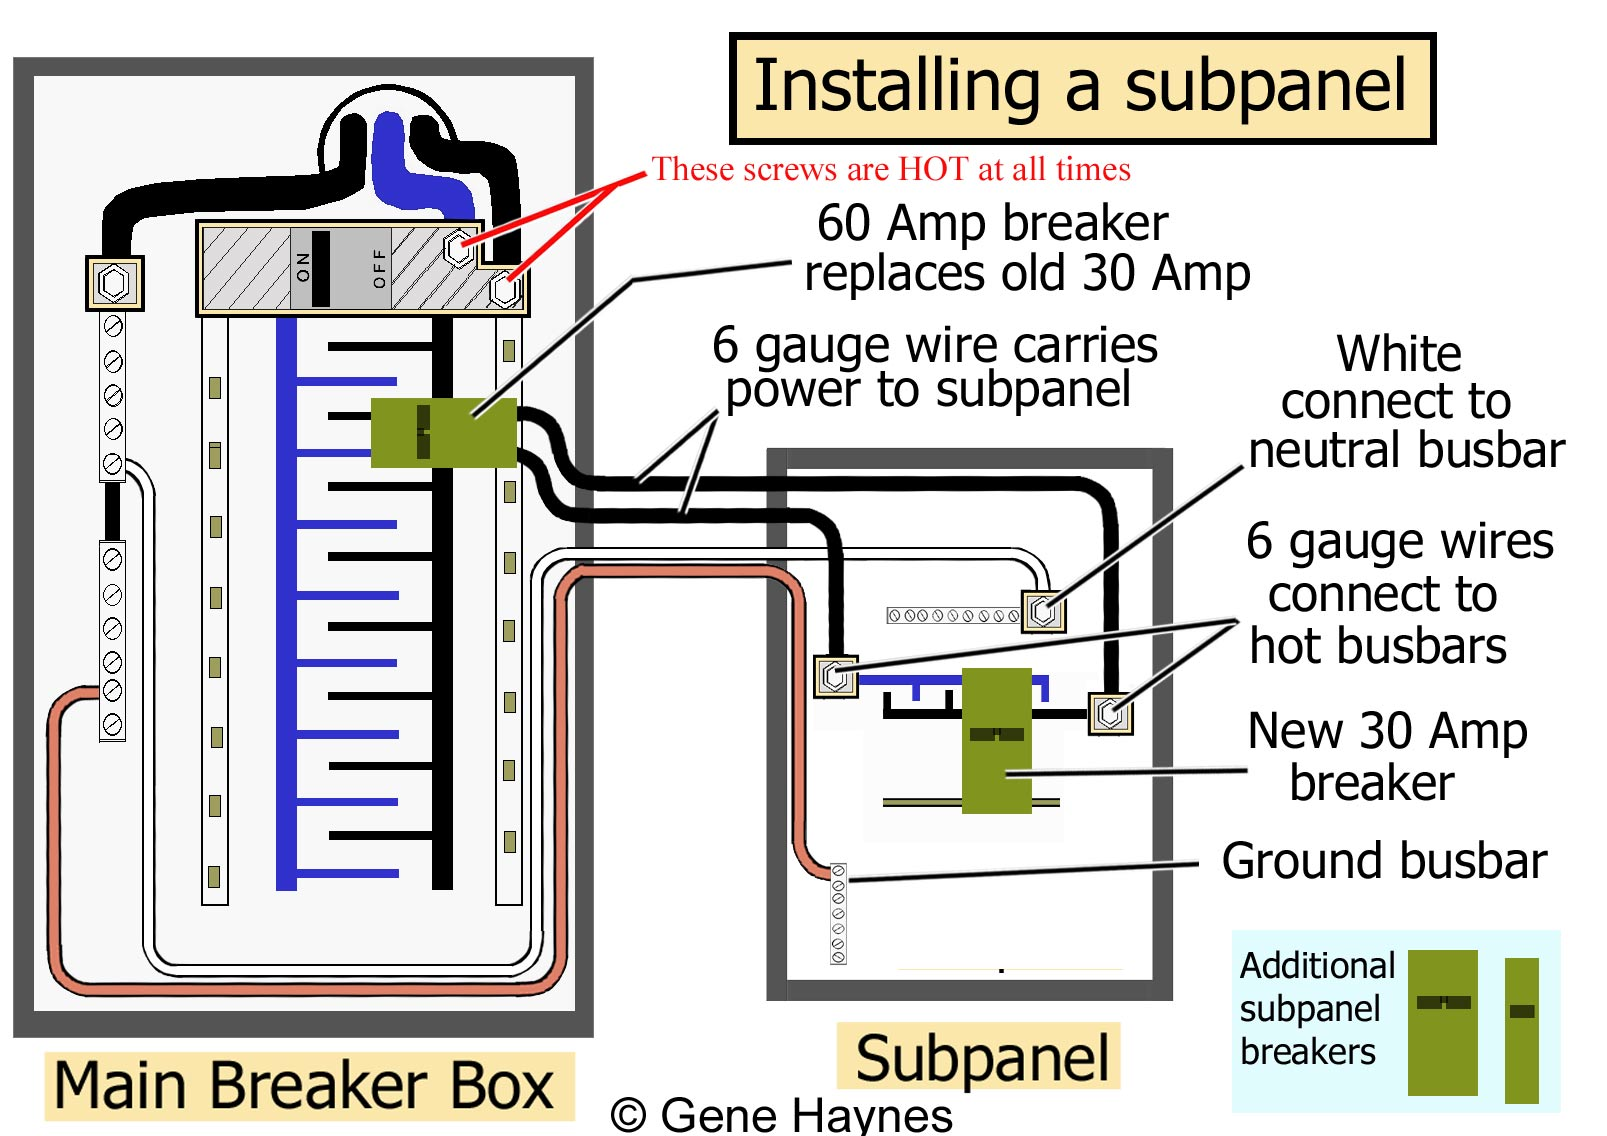 Main subpanel 2aa how to install a subpanel how to install main lug wiring diagram for 60 amp subpanel at crackthecode.co